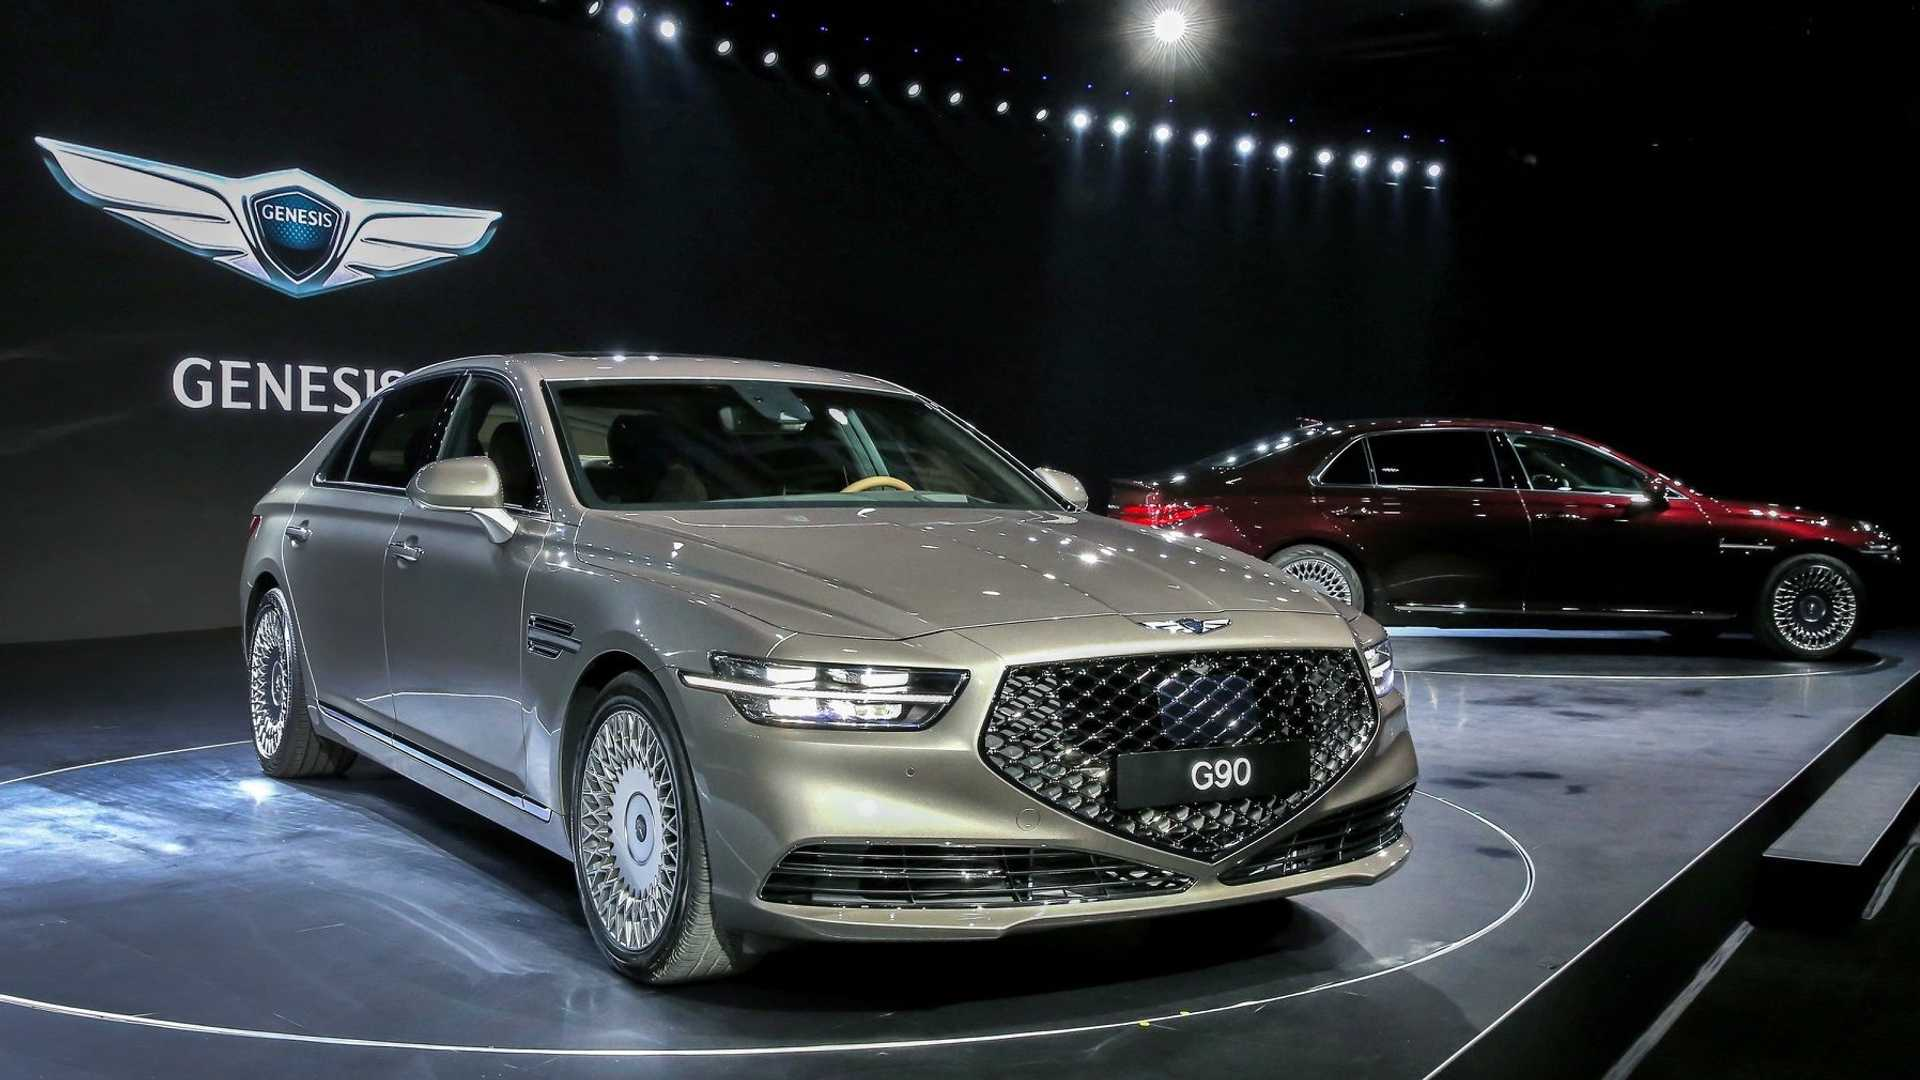 51 The 2020 Genesis Price Design And Review